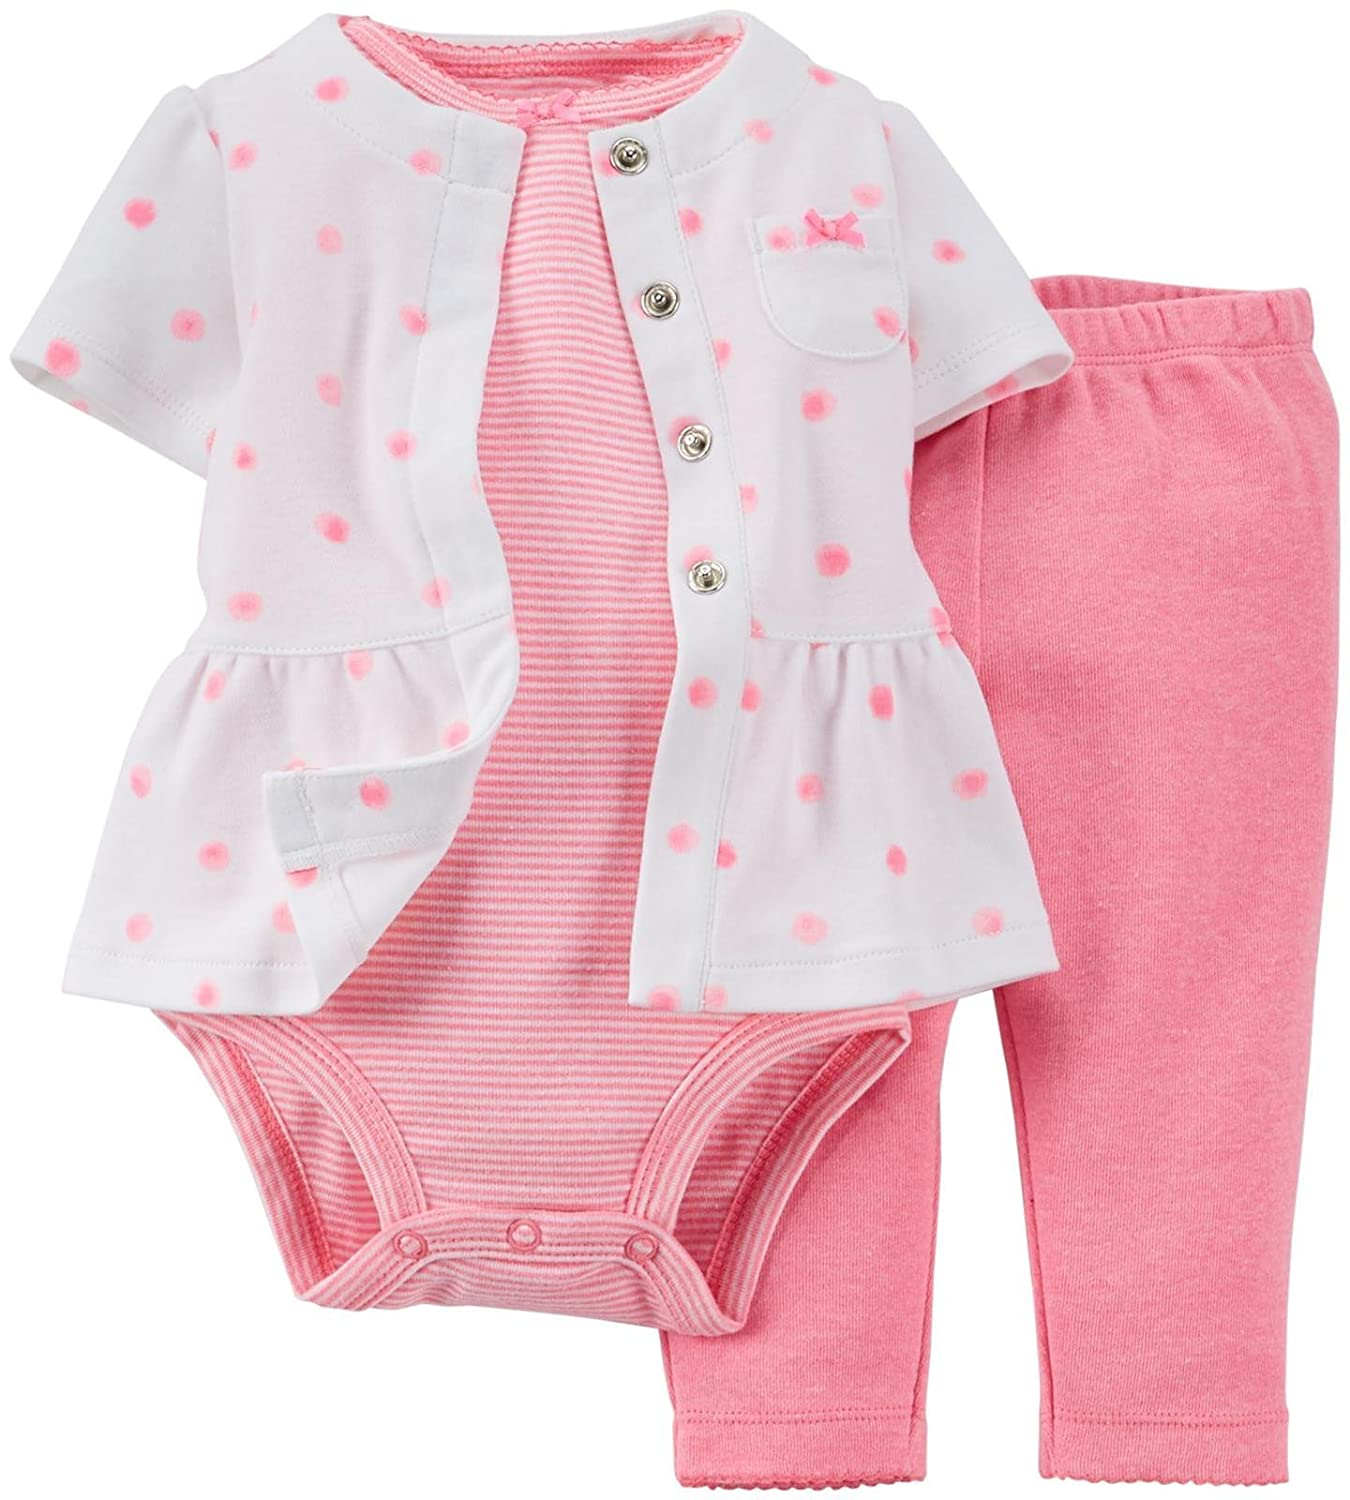 Carters Baby Girls 3-Piece Layette Set